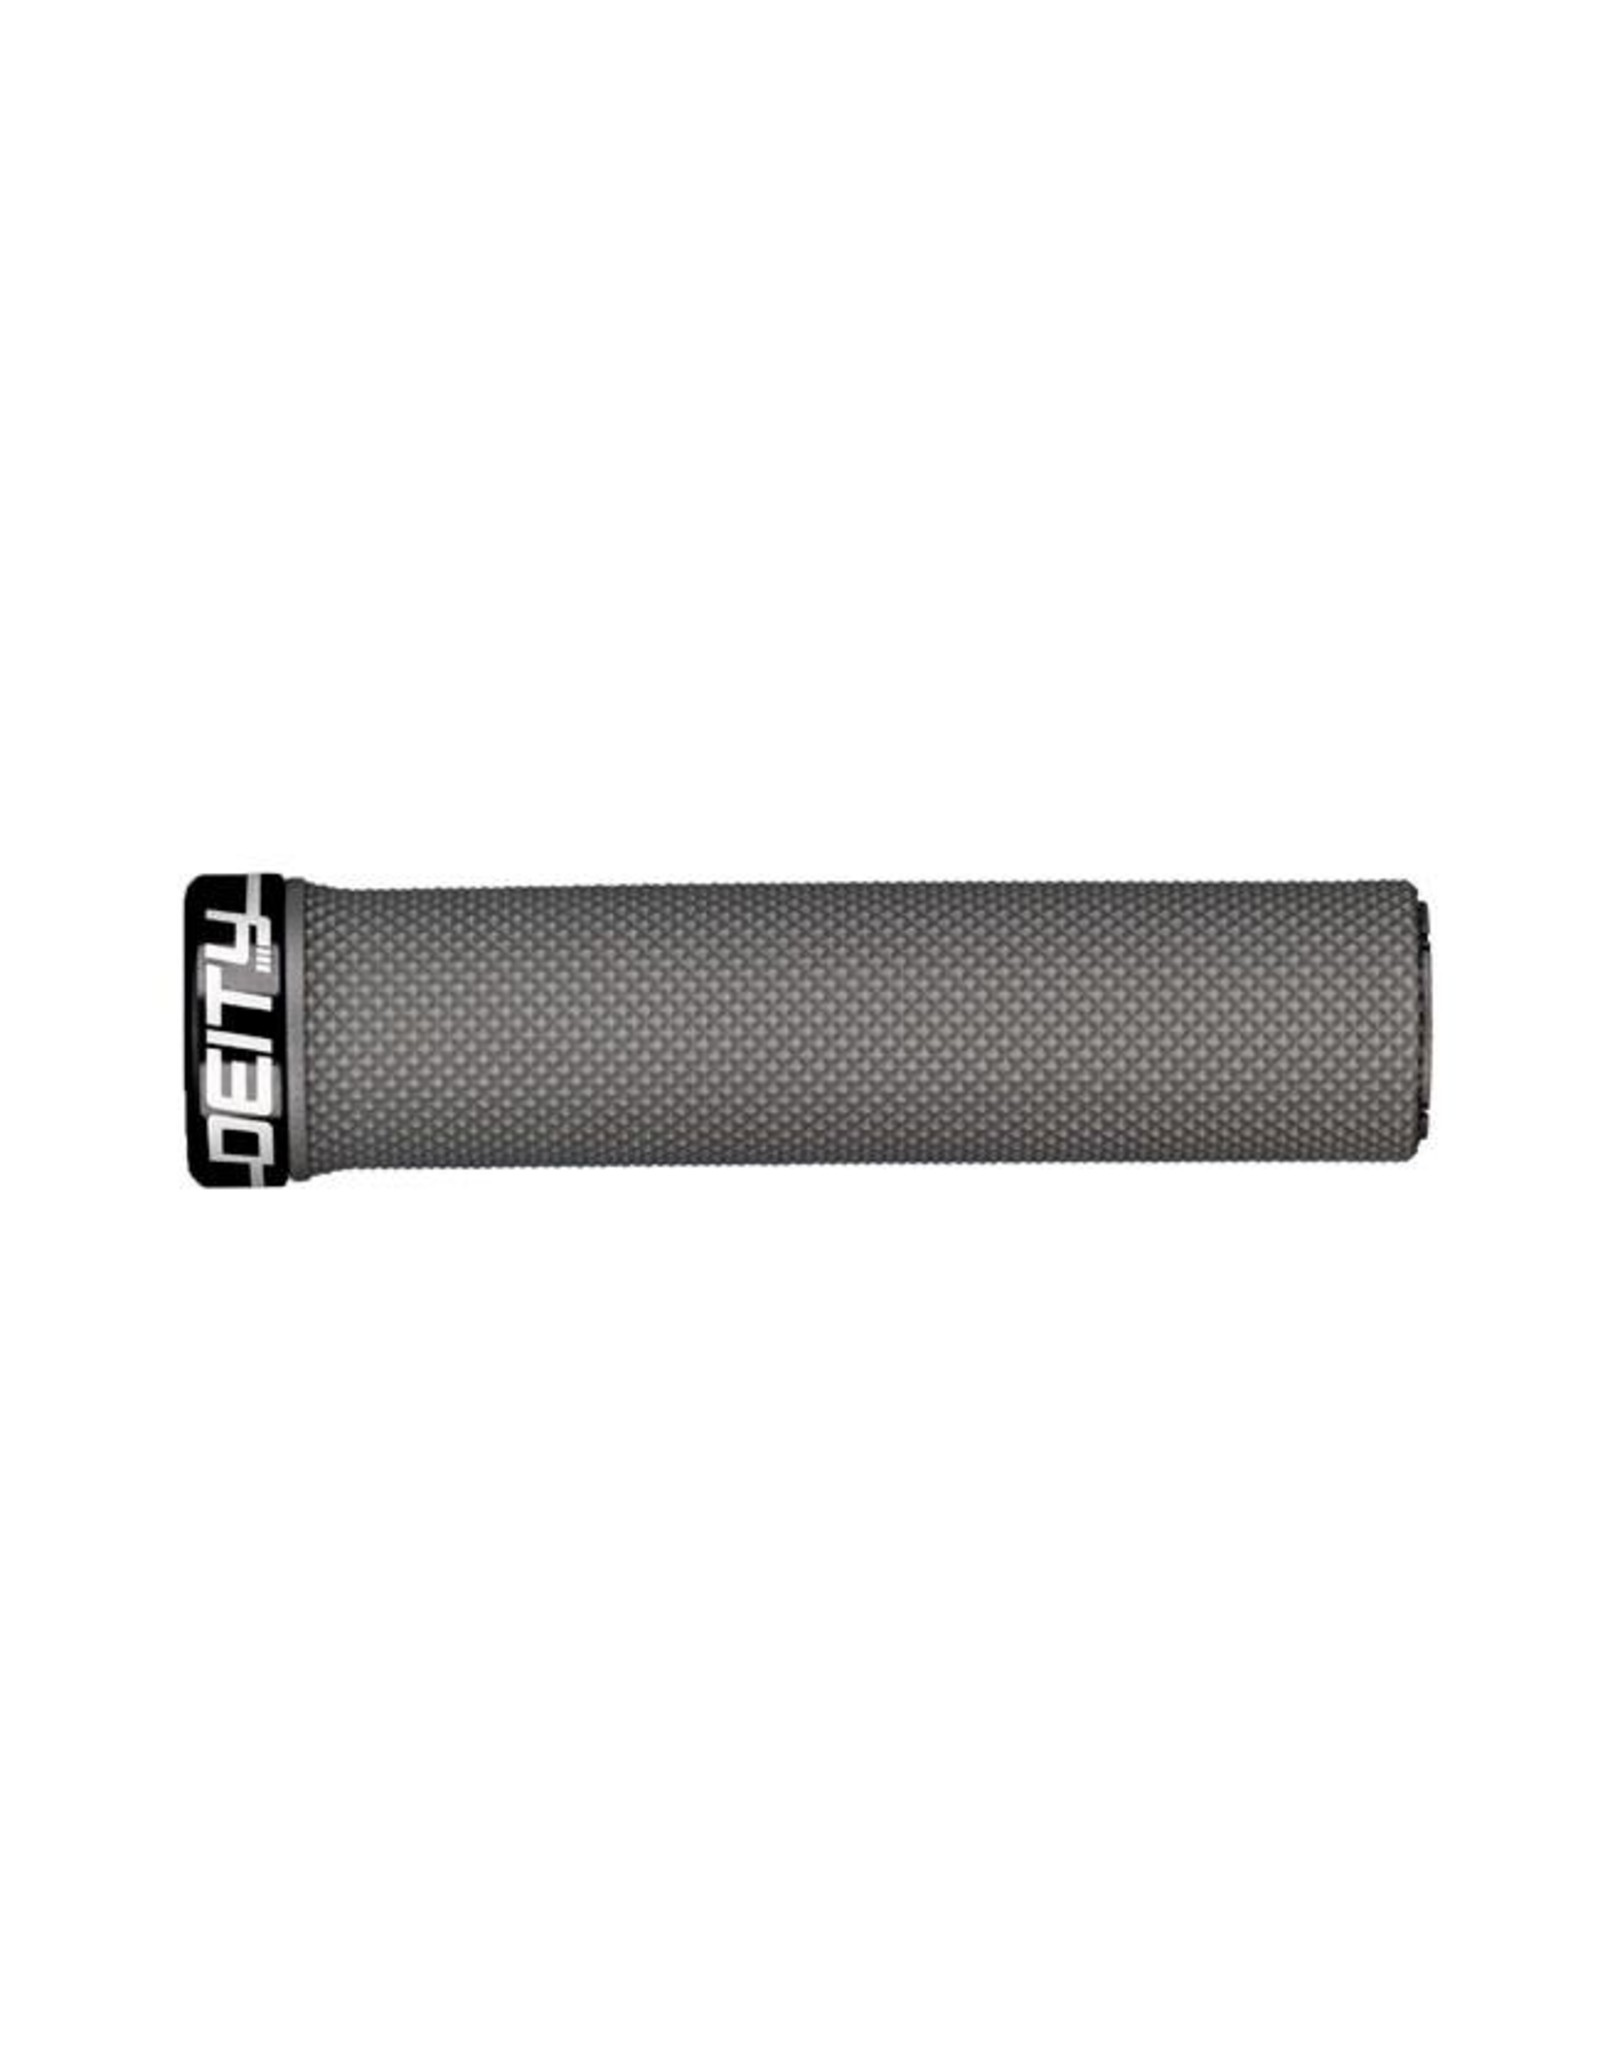 Deity Components Deity Waypoint Lock-on Grips: Stealth with Black Clamp